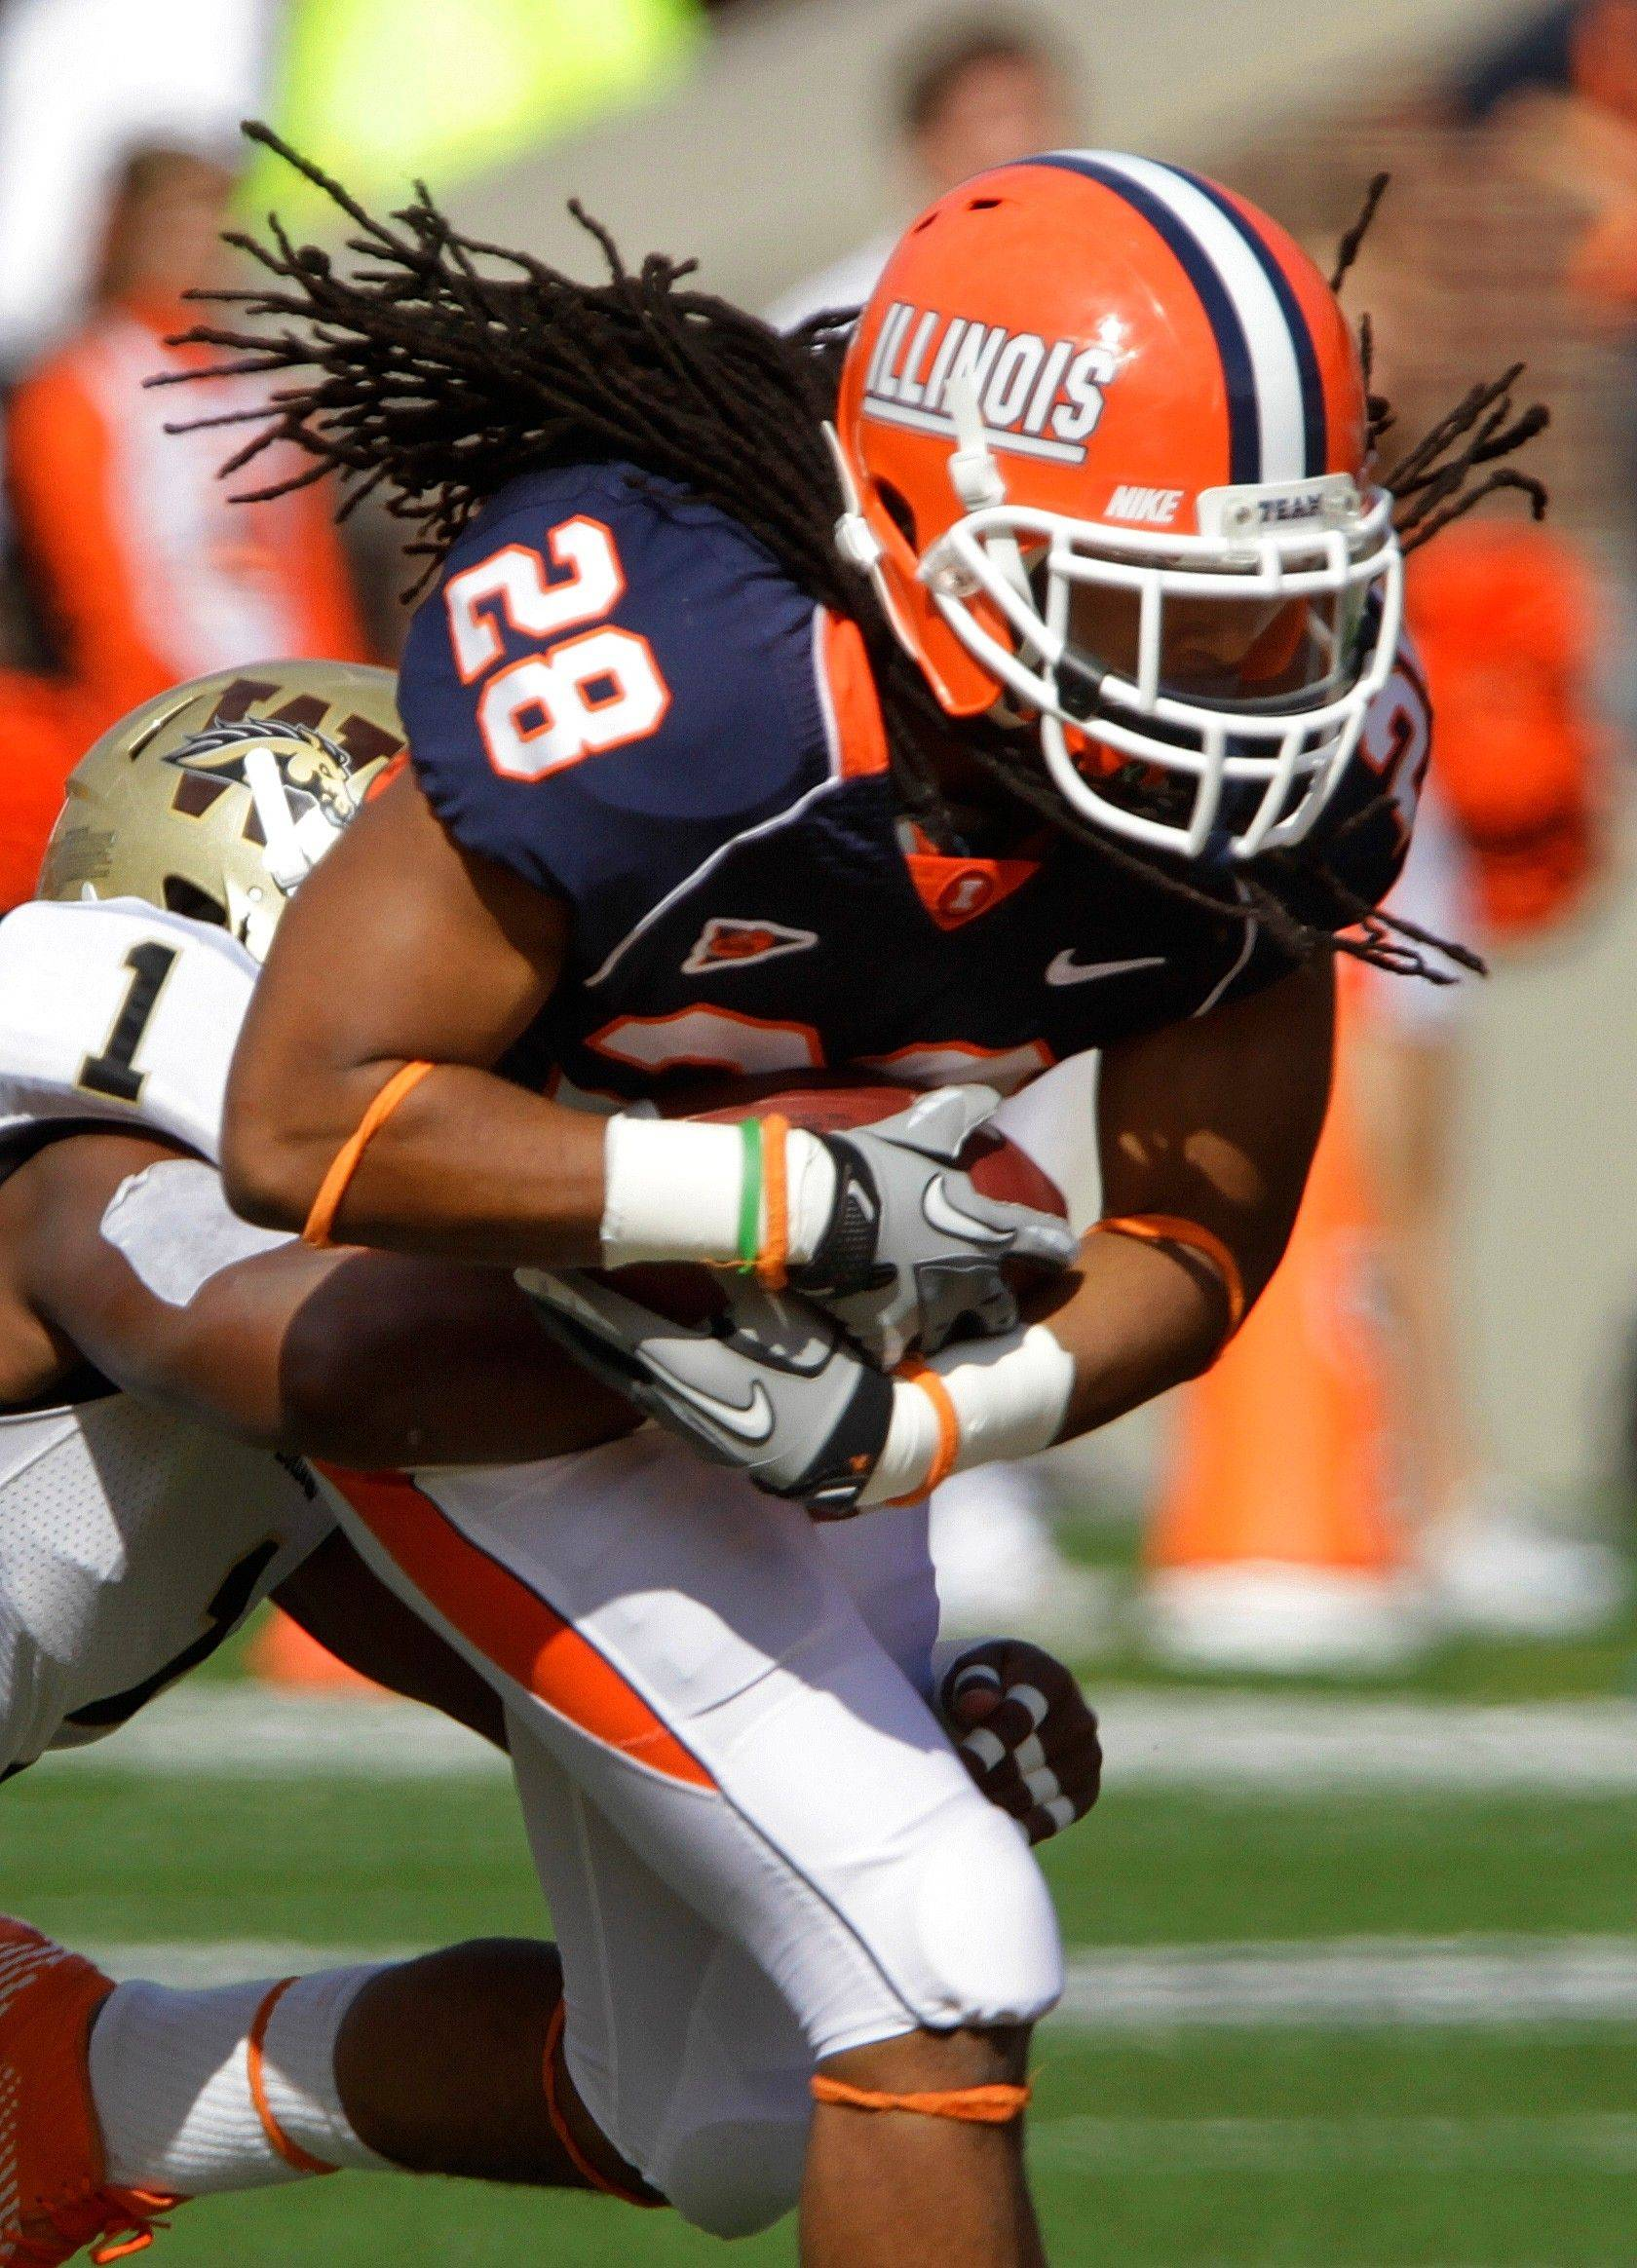 Fifth-year senior running back Troy Pollard finished with career highs of 133 yards on 14 carries for Illinois.